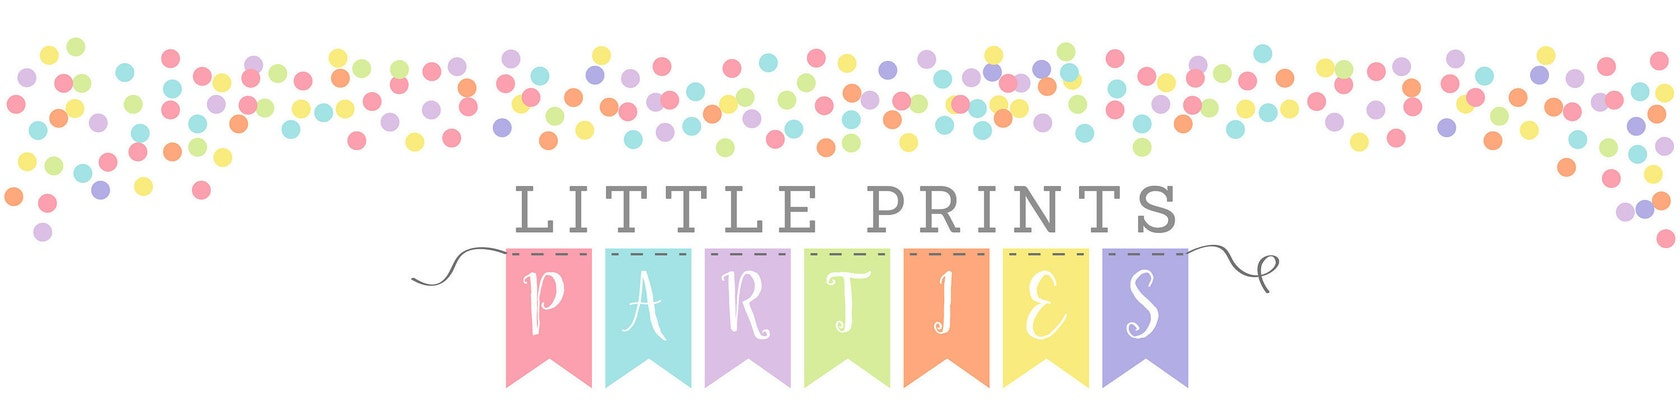 baby shower bridal invitations games by littleprintsparties